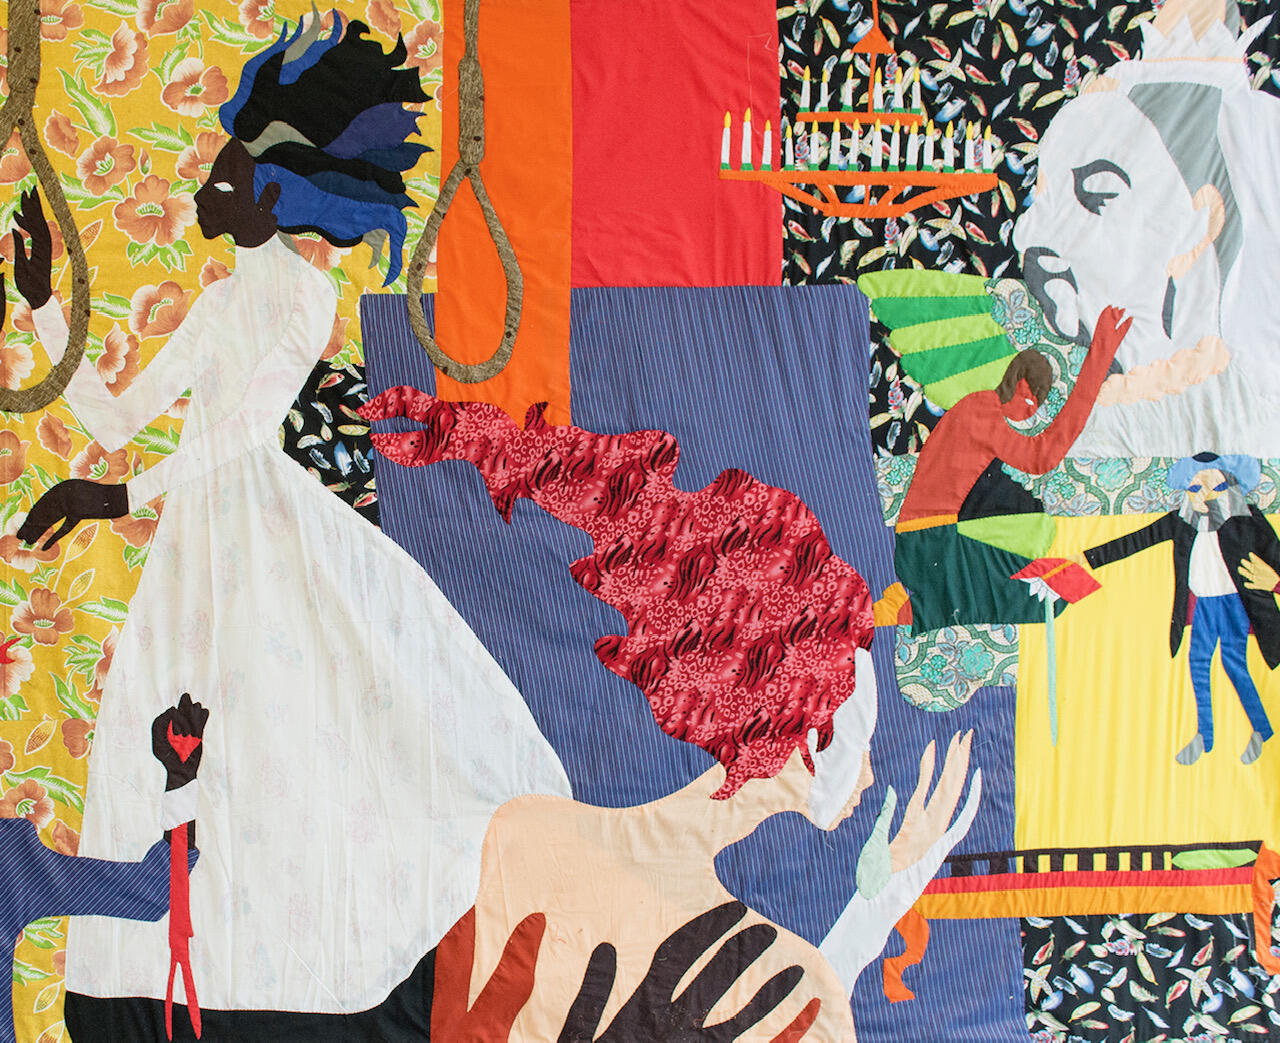 CHRISTOPHER MYERS  Funnyhouse Of A Negro, 2018 (detail)  Appliqué fabric  84 x 144 in.  213.4 x 365.8 cm    Courtesy the artist and James Cohan.